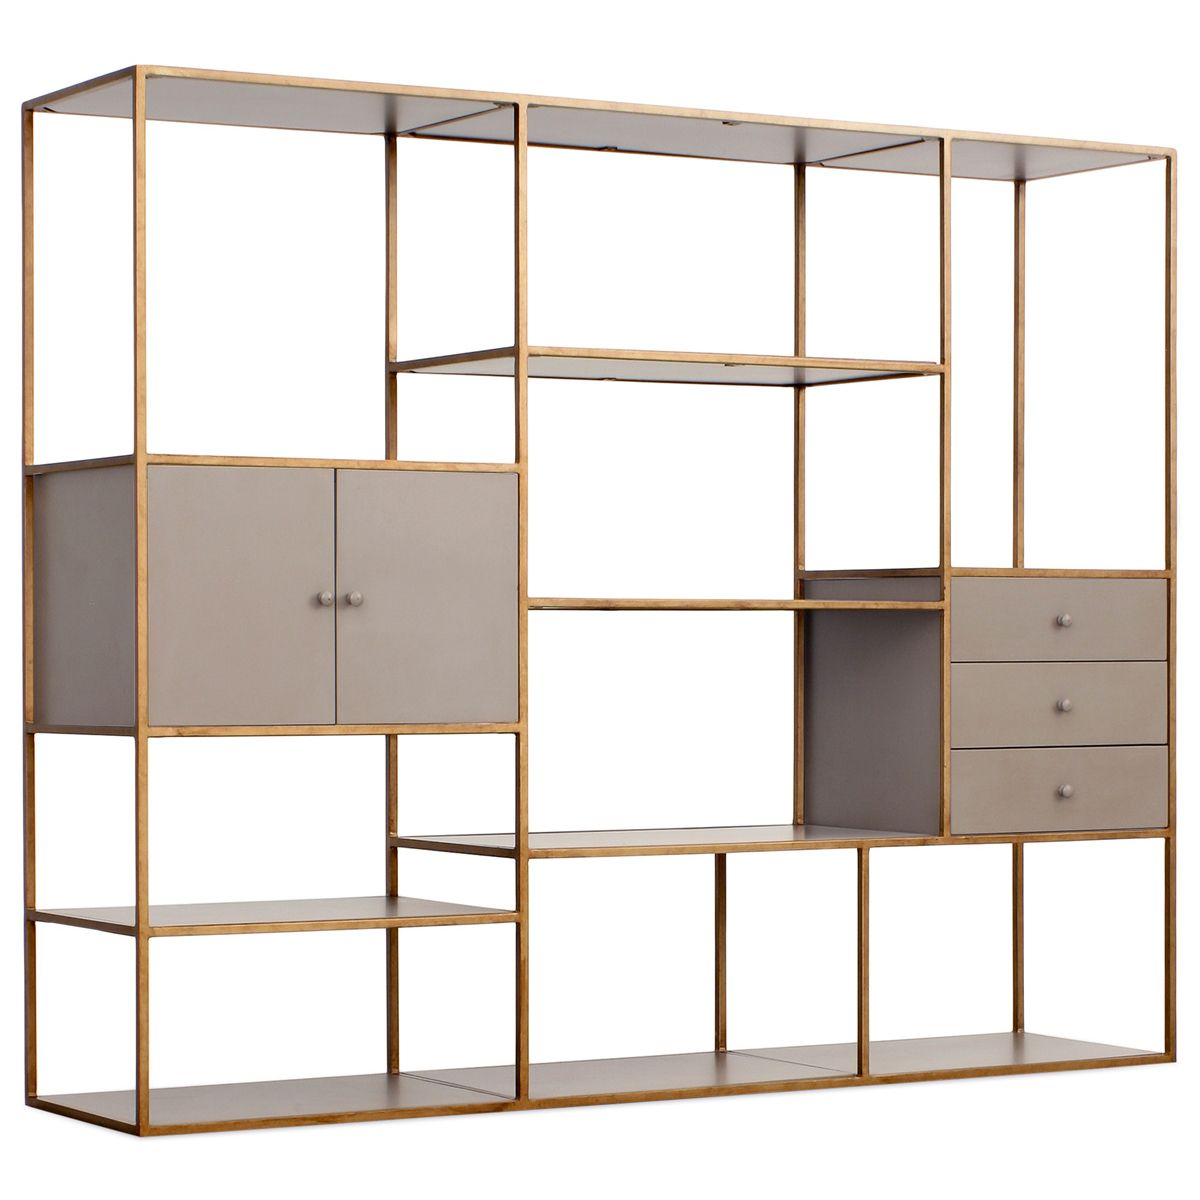 Meubles Cloison Double Face these metal and glass bookshelves are fabulous. redford